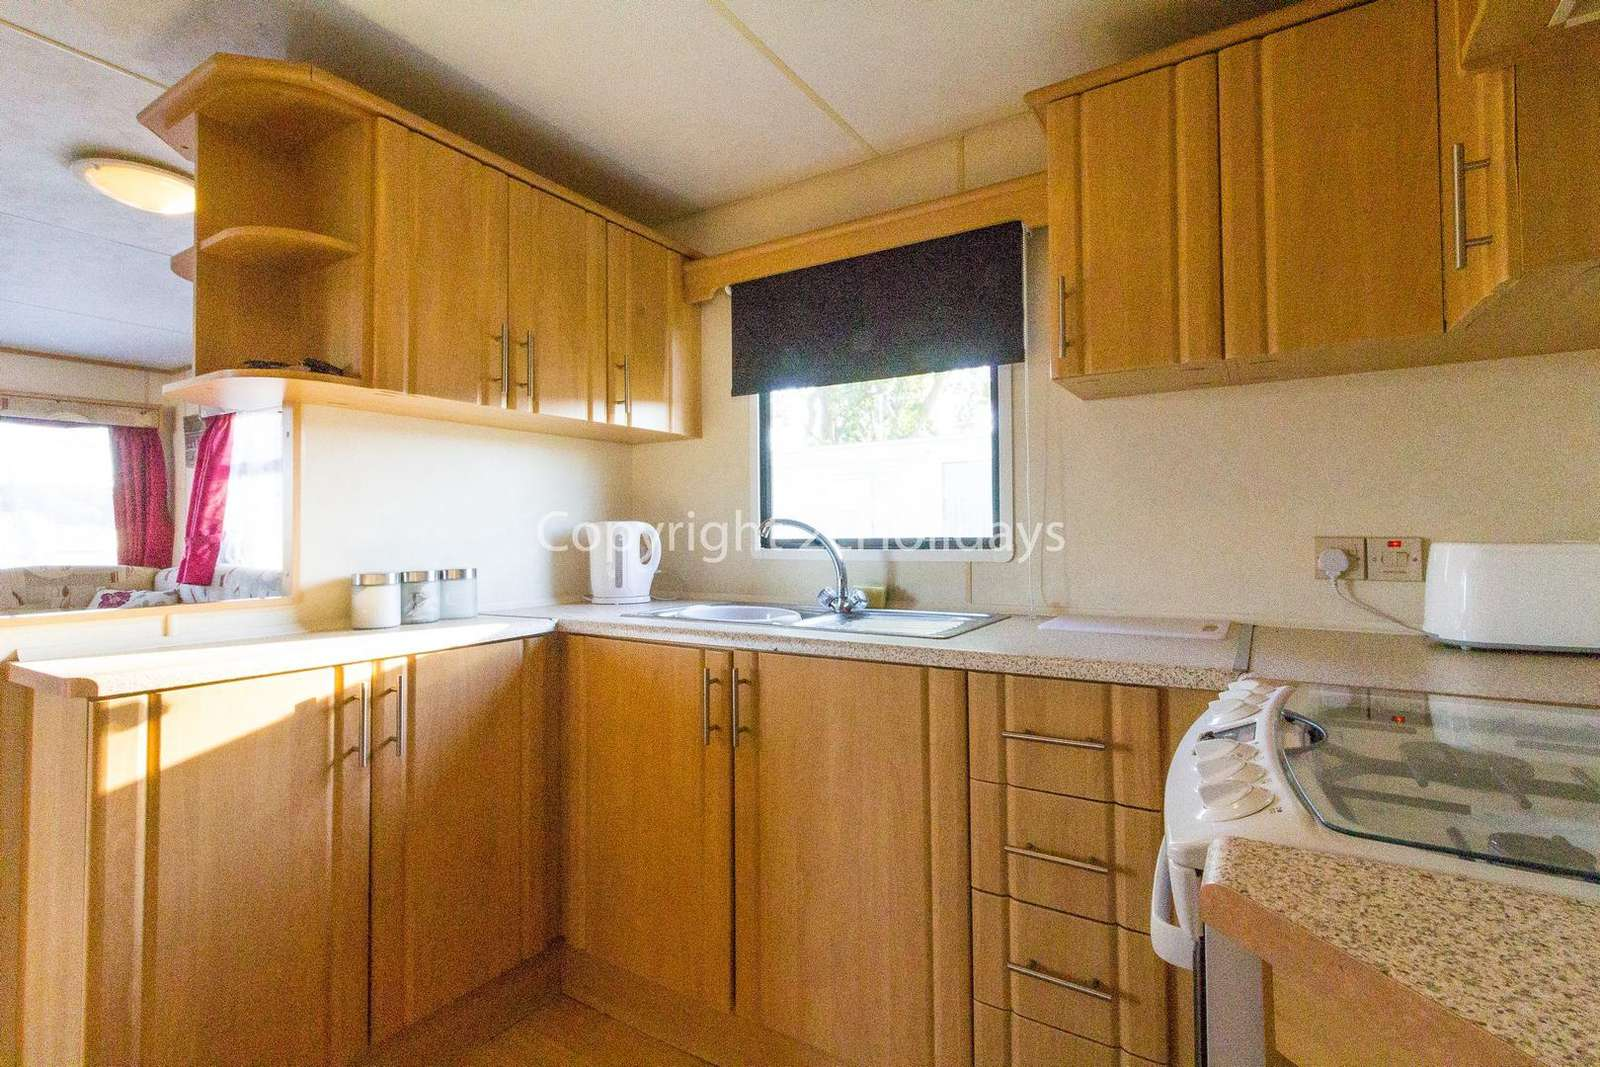 Seawick Holiday Park, in Essex